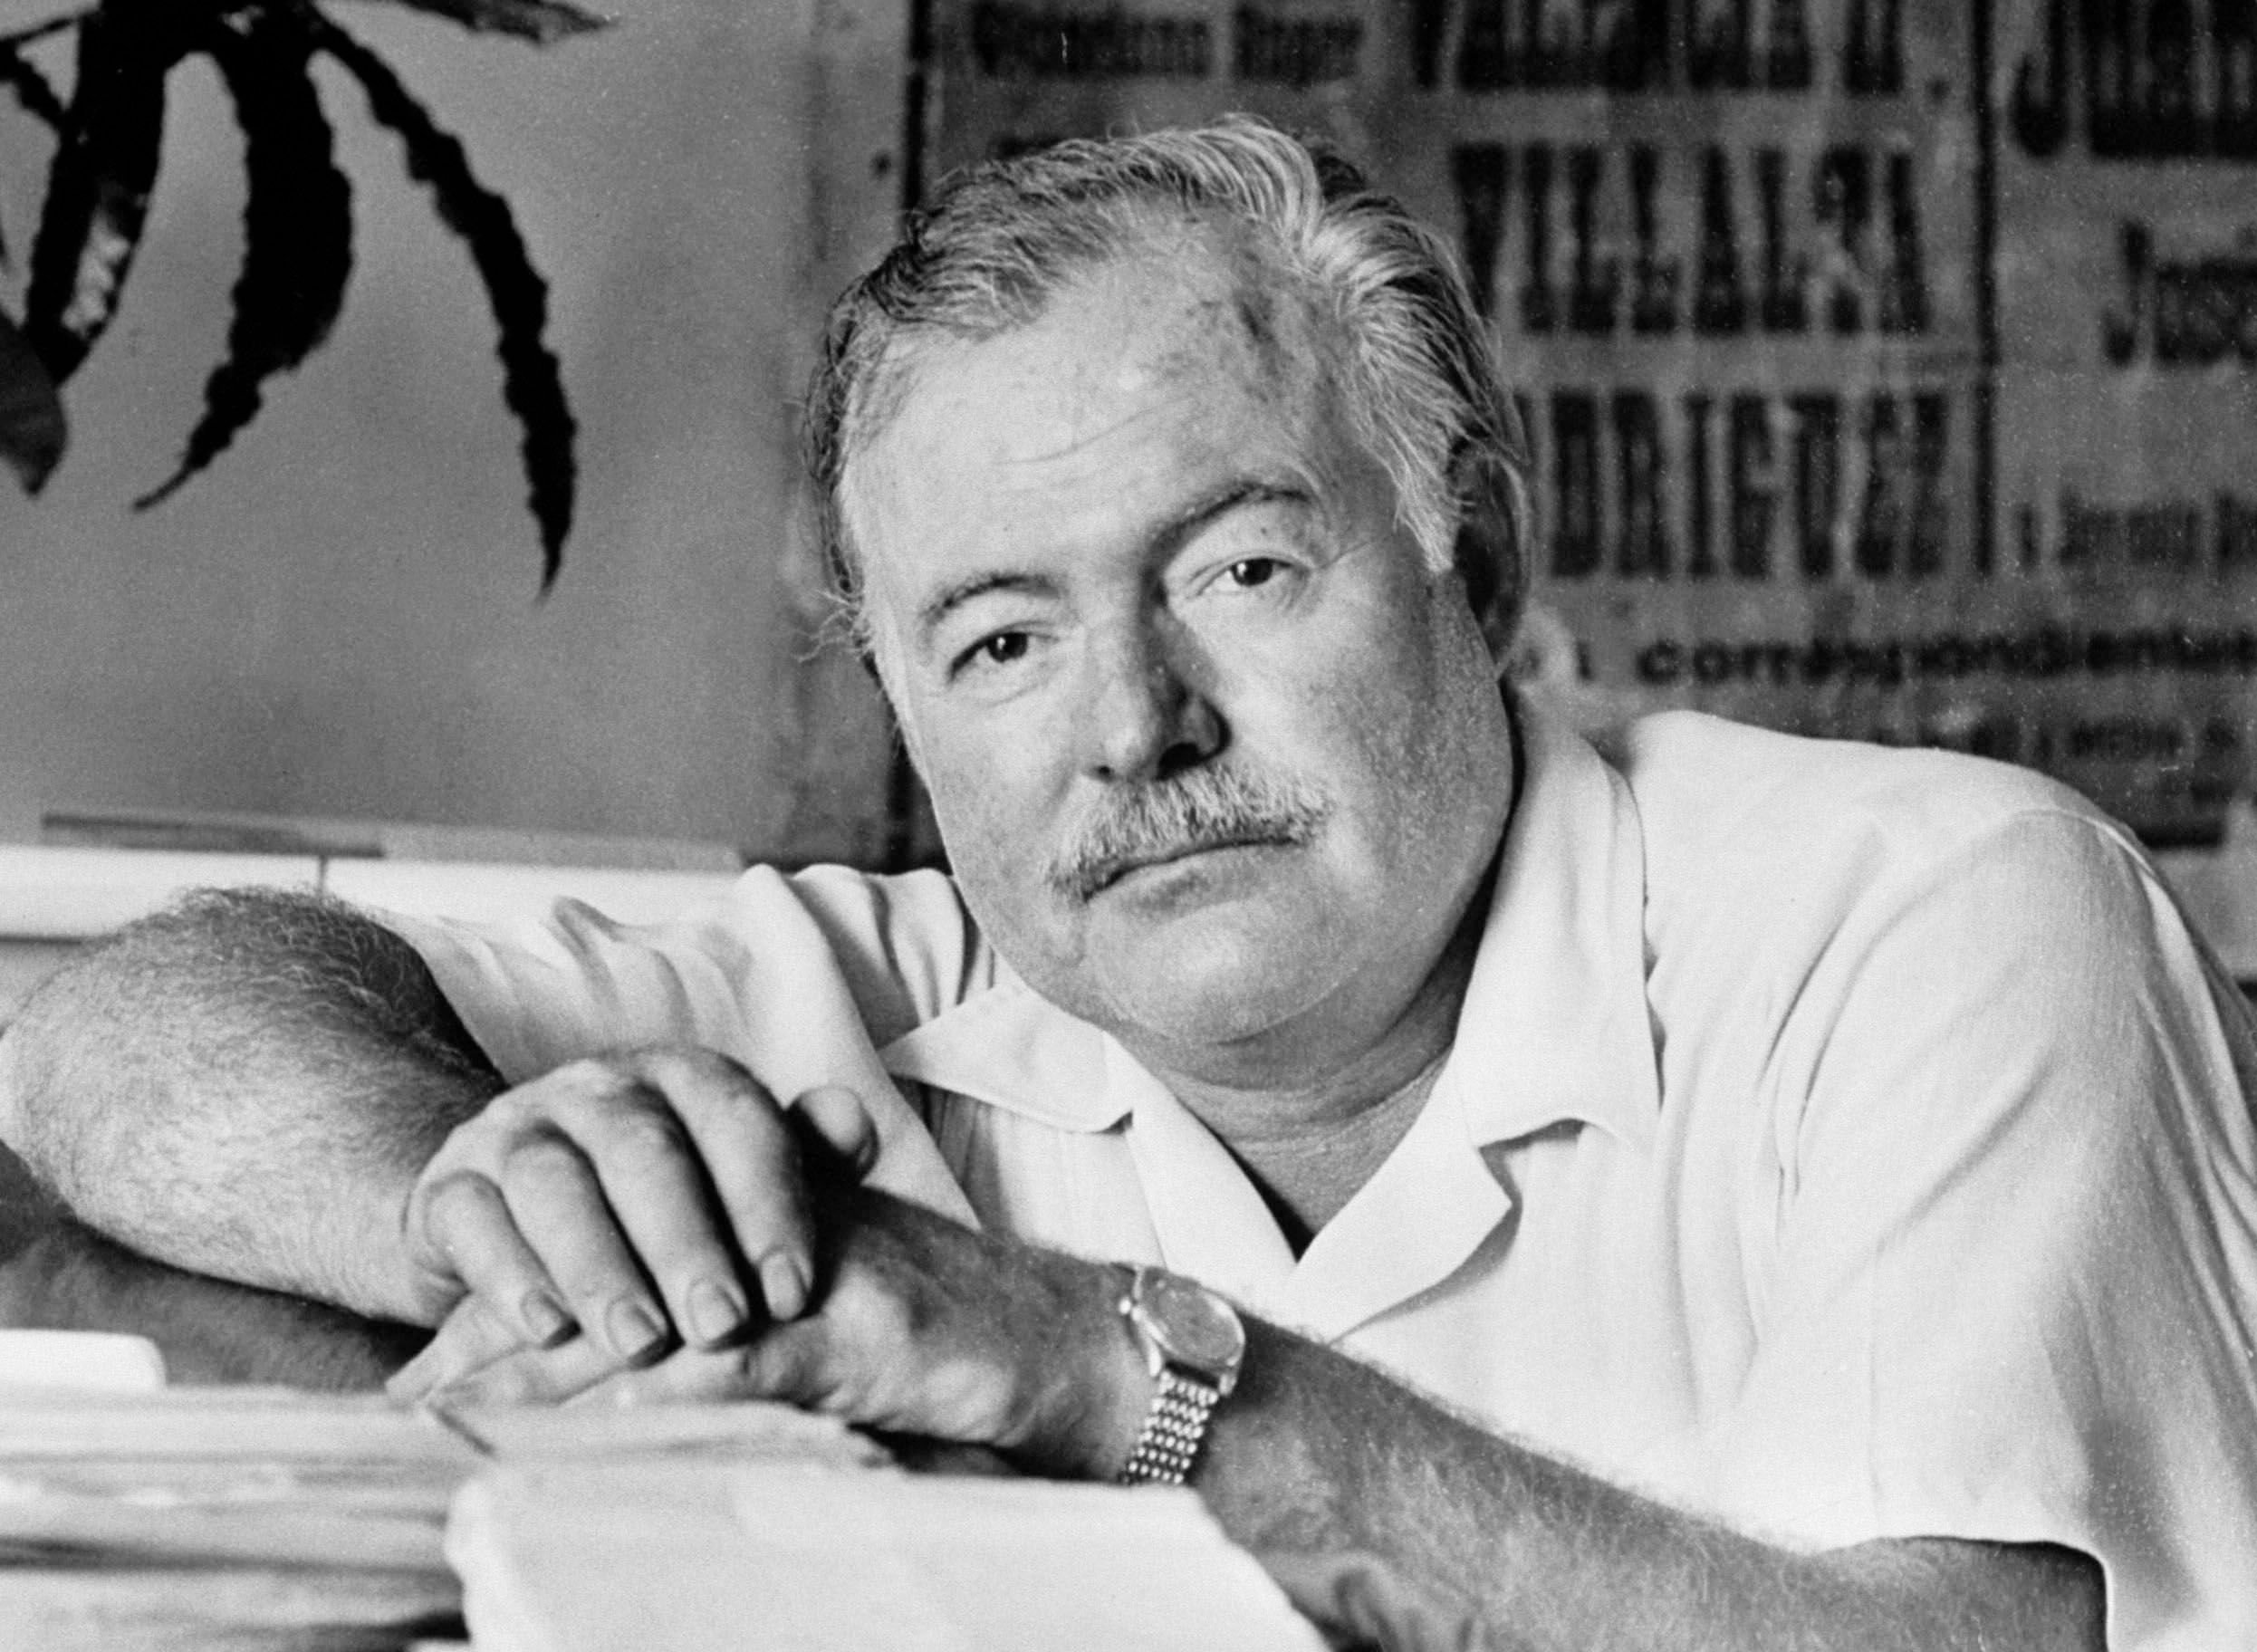 Author Ernest Hemingway | Source: Getty Images